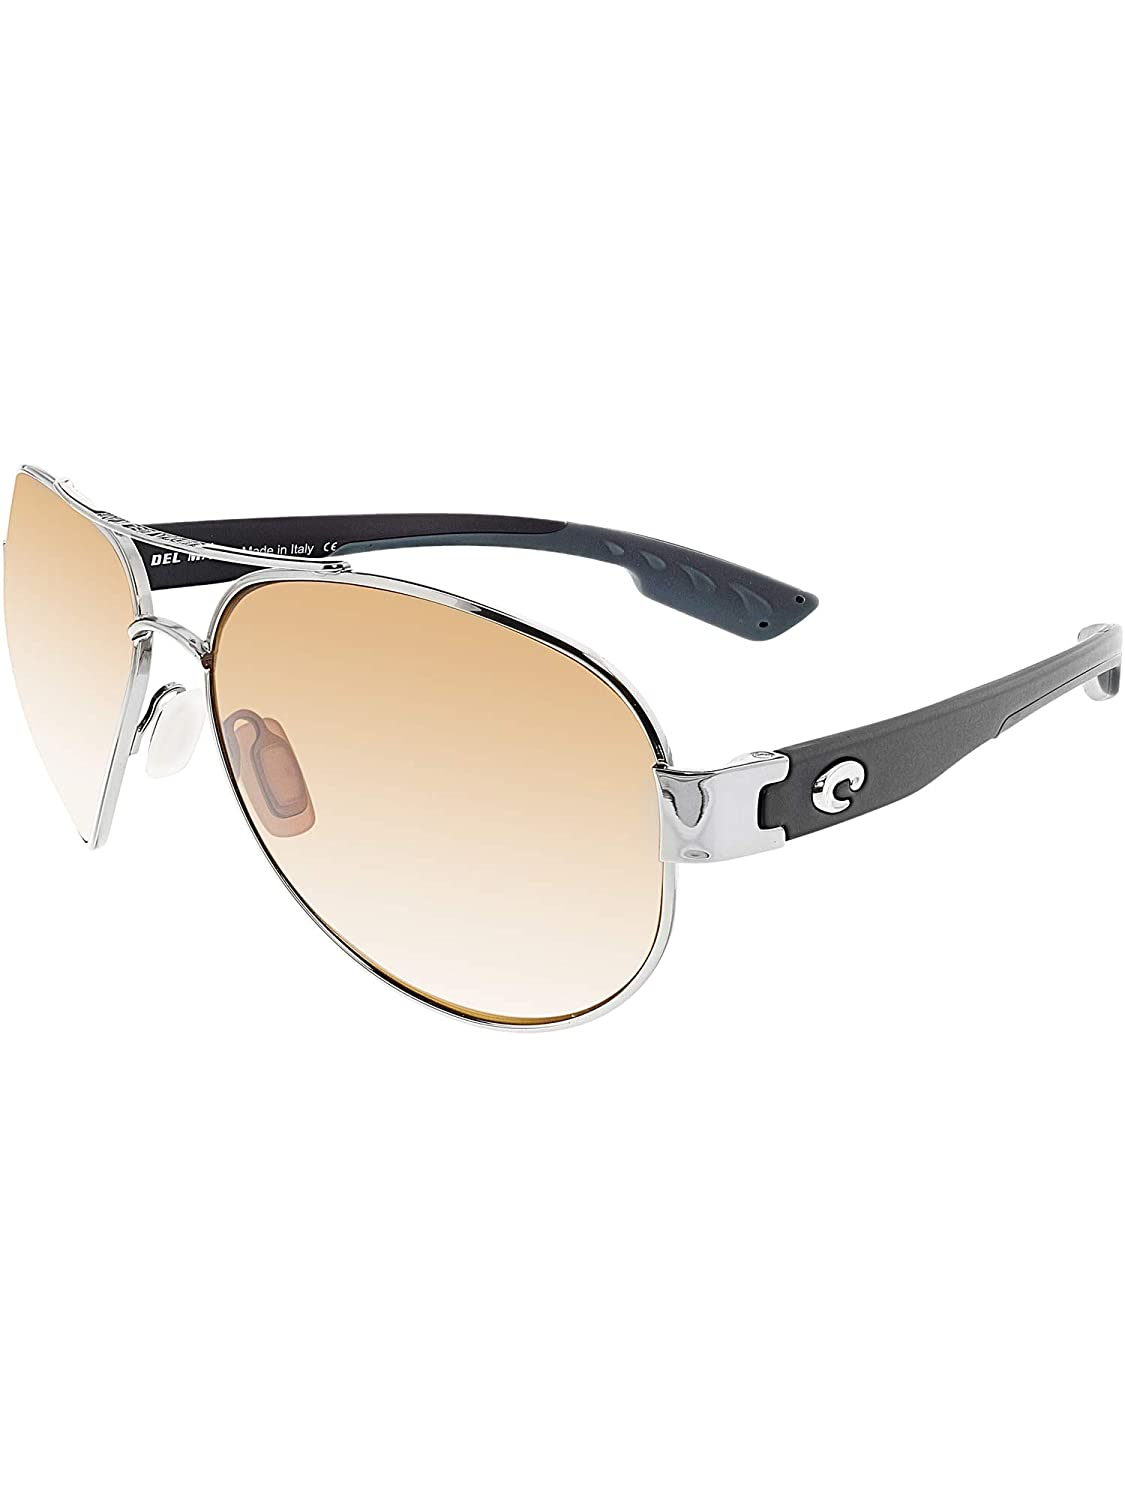 0ed9be5787c Amazon.com  Costa Del Mar South Point Sunglasses  Sports   Outdoors